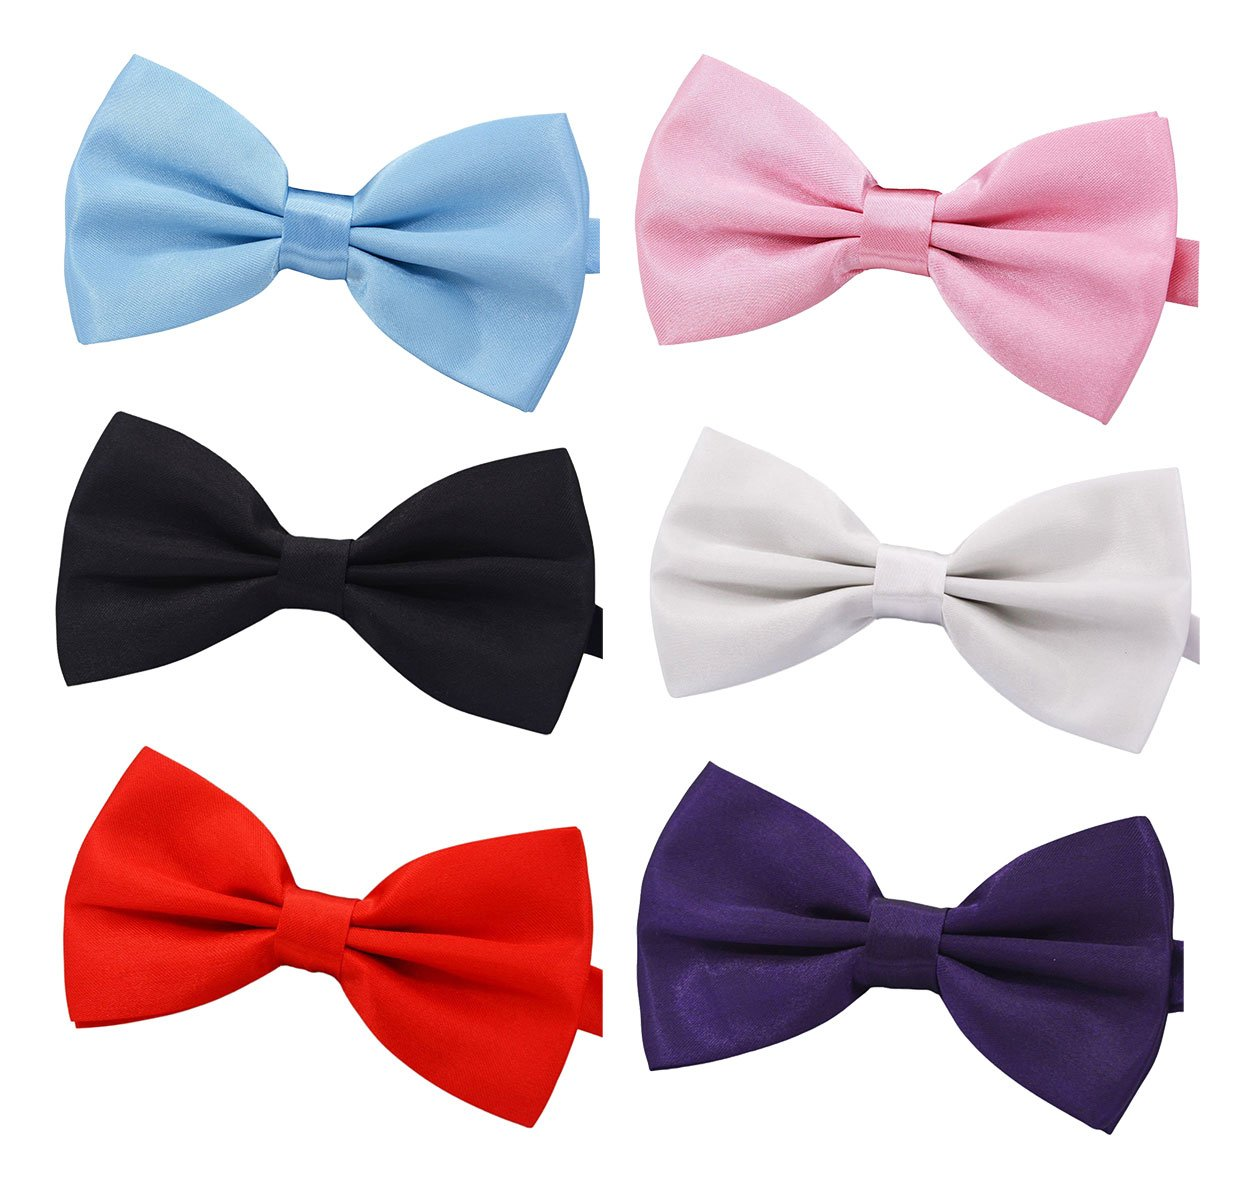 Amajiji Formal Dog Bow Ties for Medium & Large Dogs (D114 100% polyester) (Mixed Colors, 6pcs)